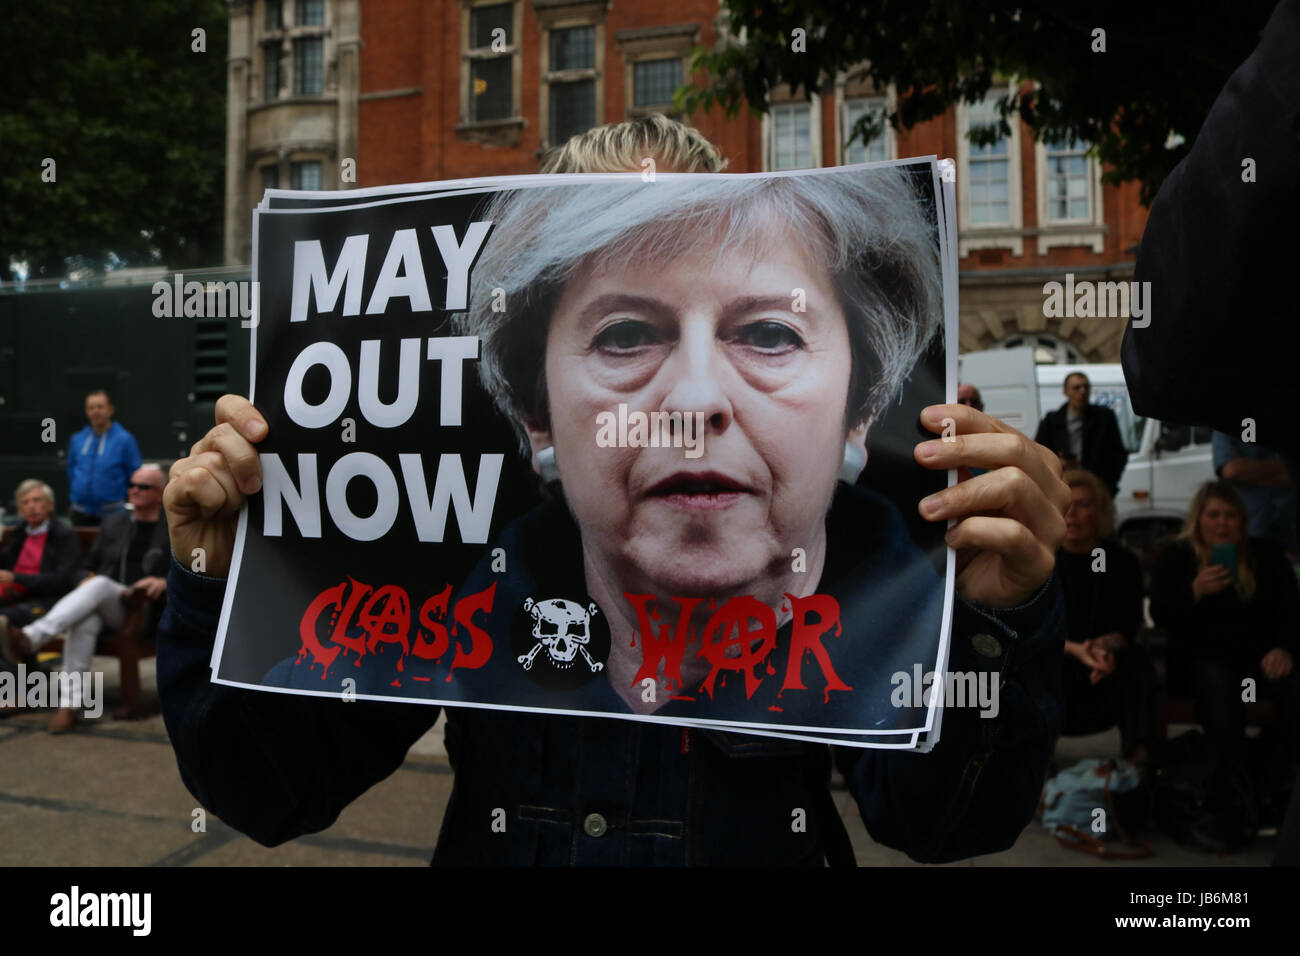 London UK. 9th Jun, 2017. A group Anti Theresa May protesters from Class War in Westminster following the general election result where the Conservative party did worse than forecast resulting in a hung parliament Credit: amer ghazzal/Alamy Live News Stock Photo